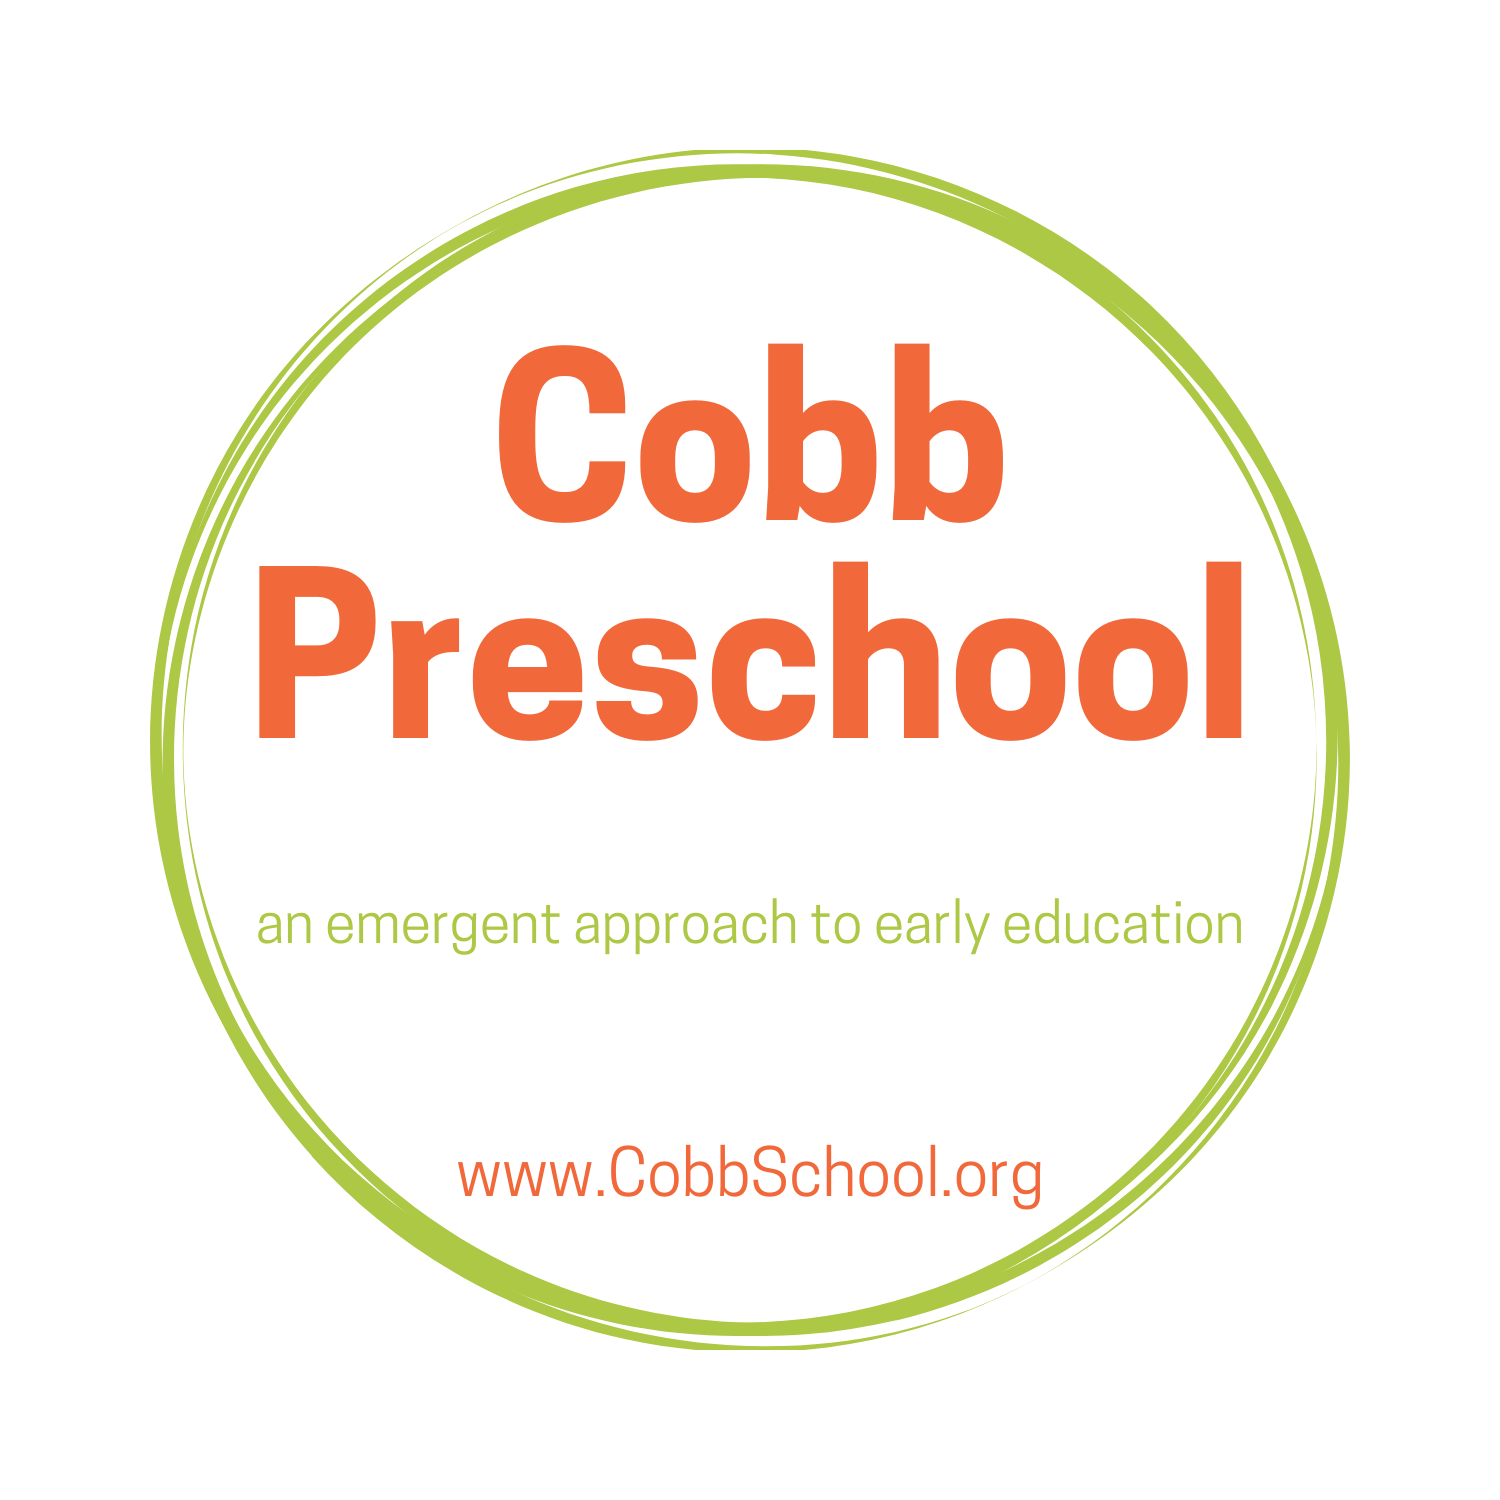 Cobb Childcare & Preschool